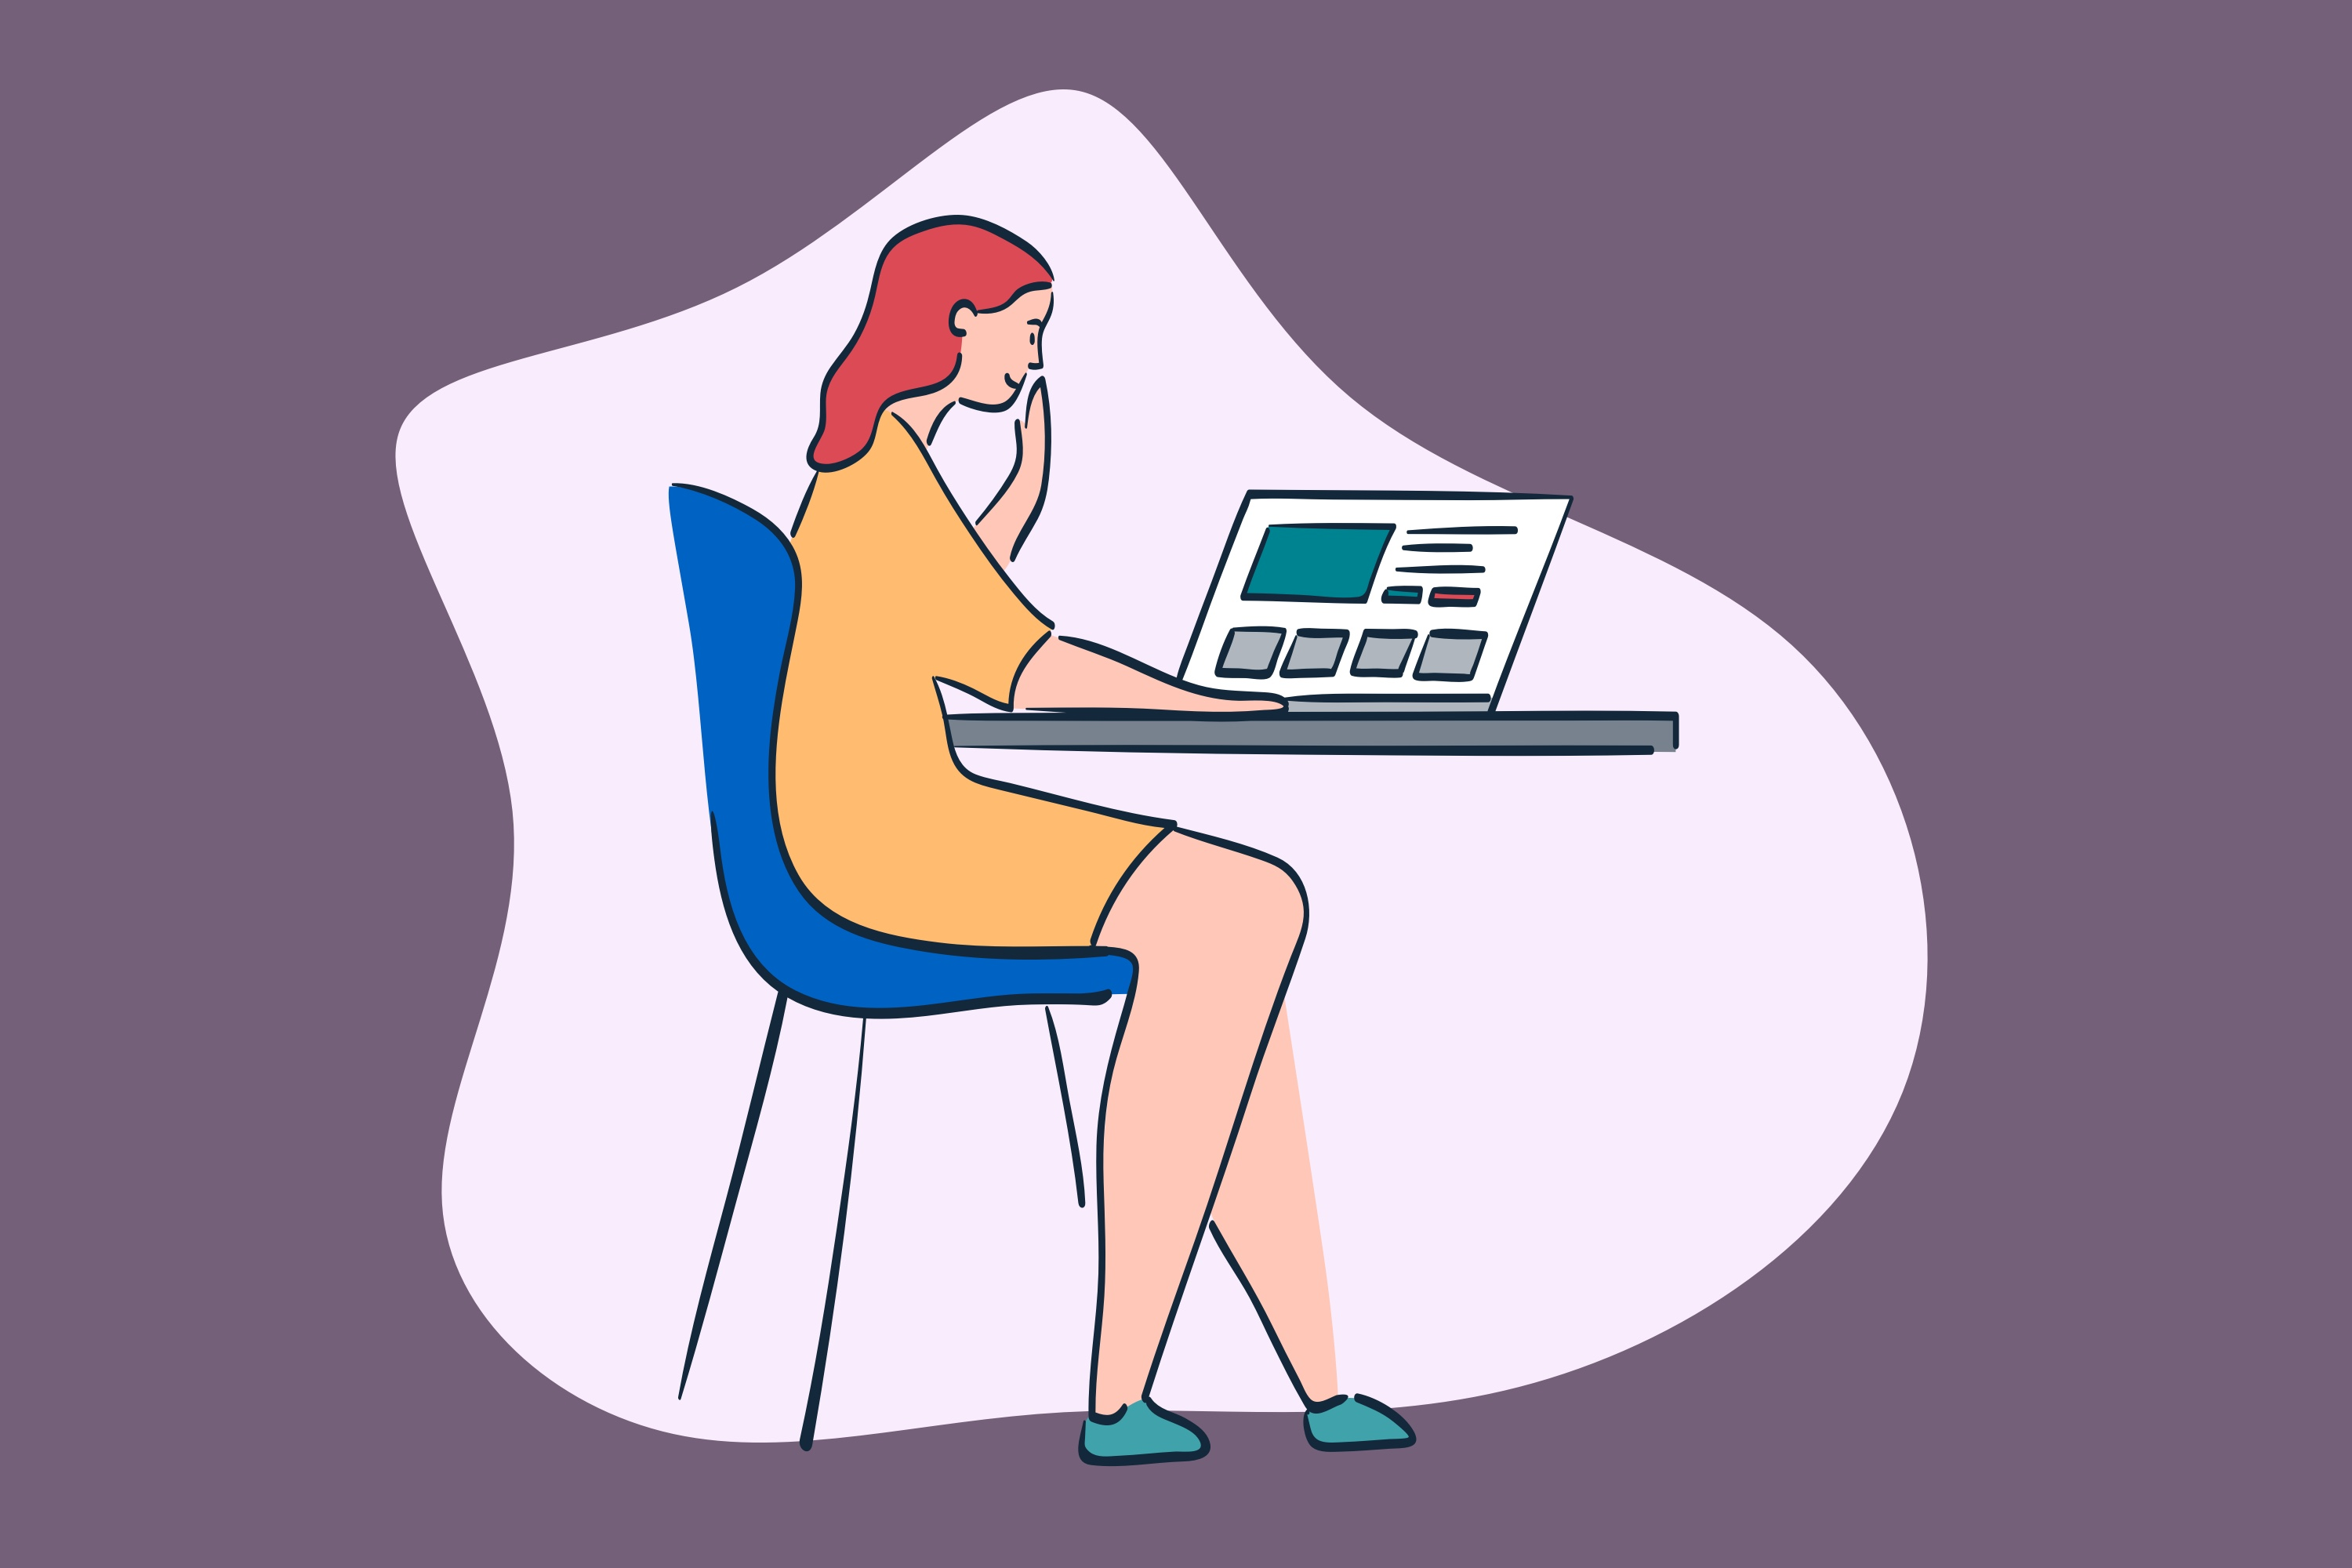 Illustration of a woman sitting at a table using a laptop